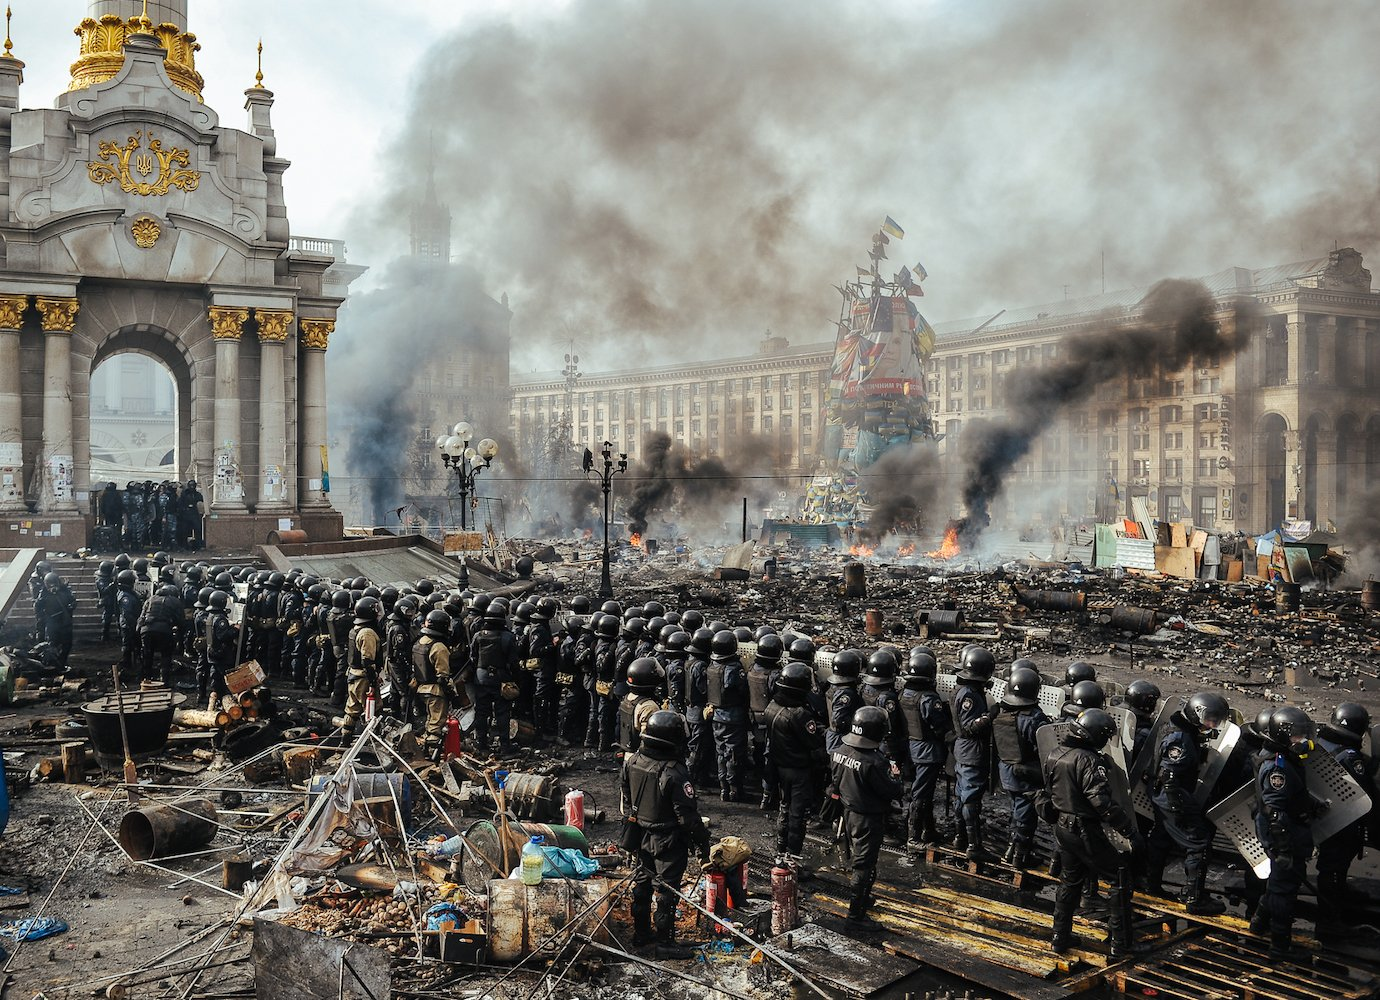 Could virtual reality hold the key to fighting disinformation in the aftermath of Euromaidan?